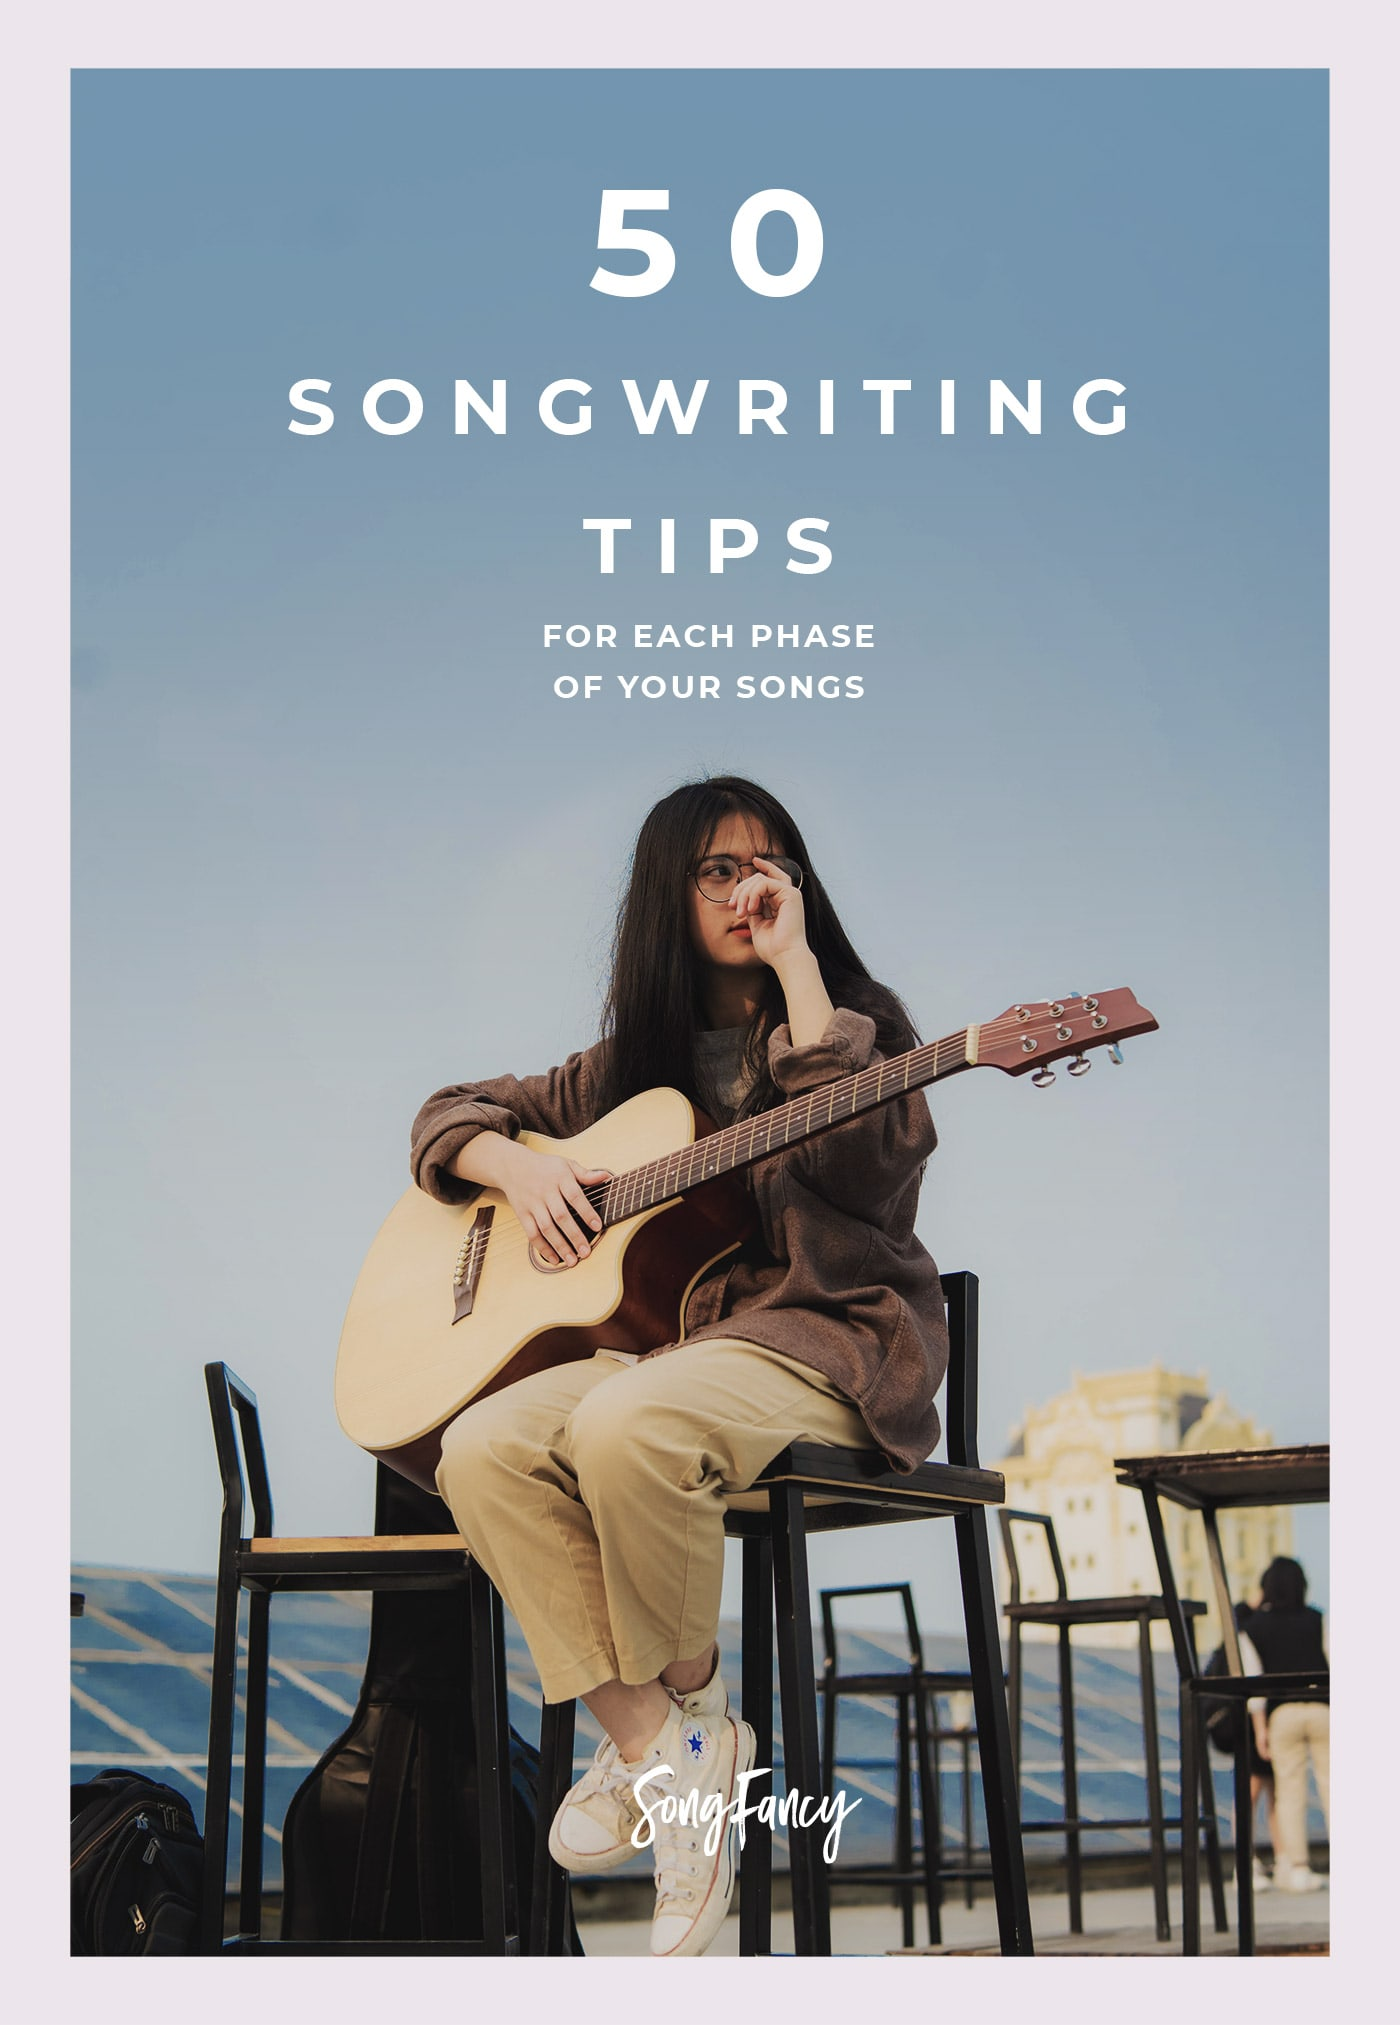 50 Songwriting Tips for Each Phase of your Songs [PLUS: Free Songwriting Tips Cheatsheet!]